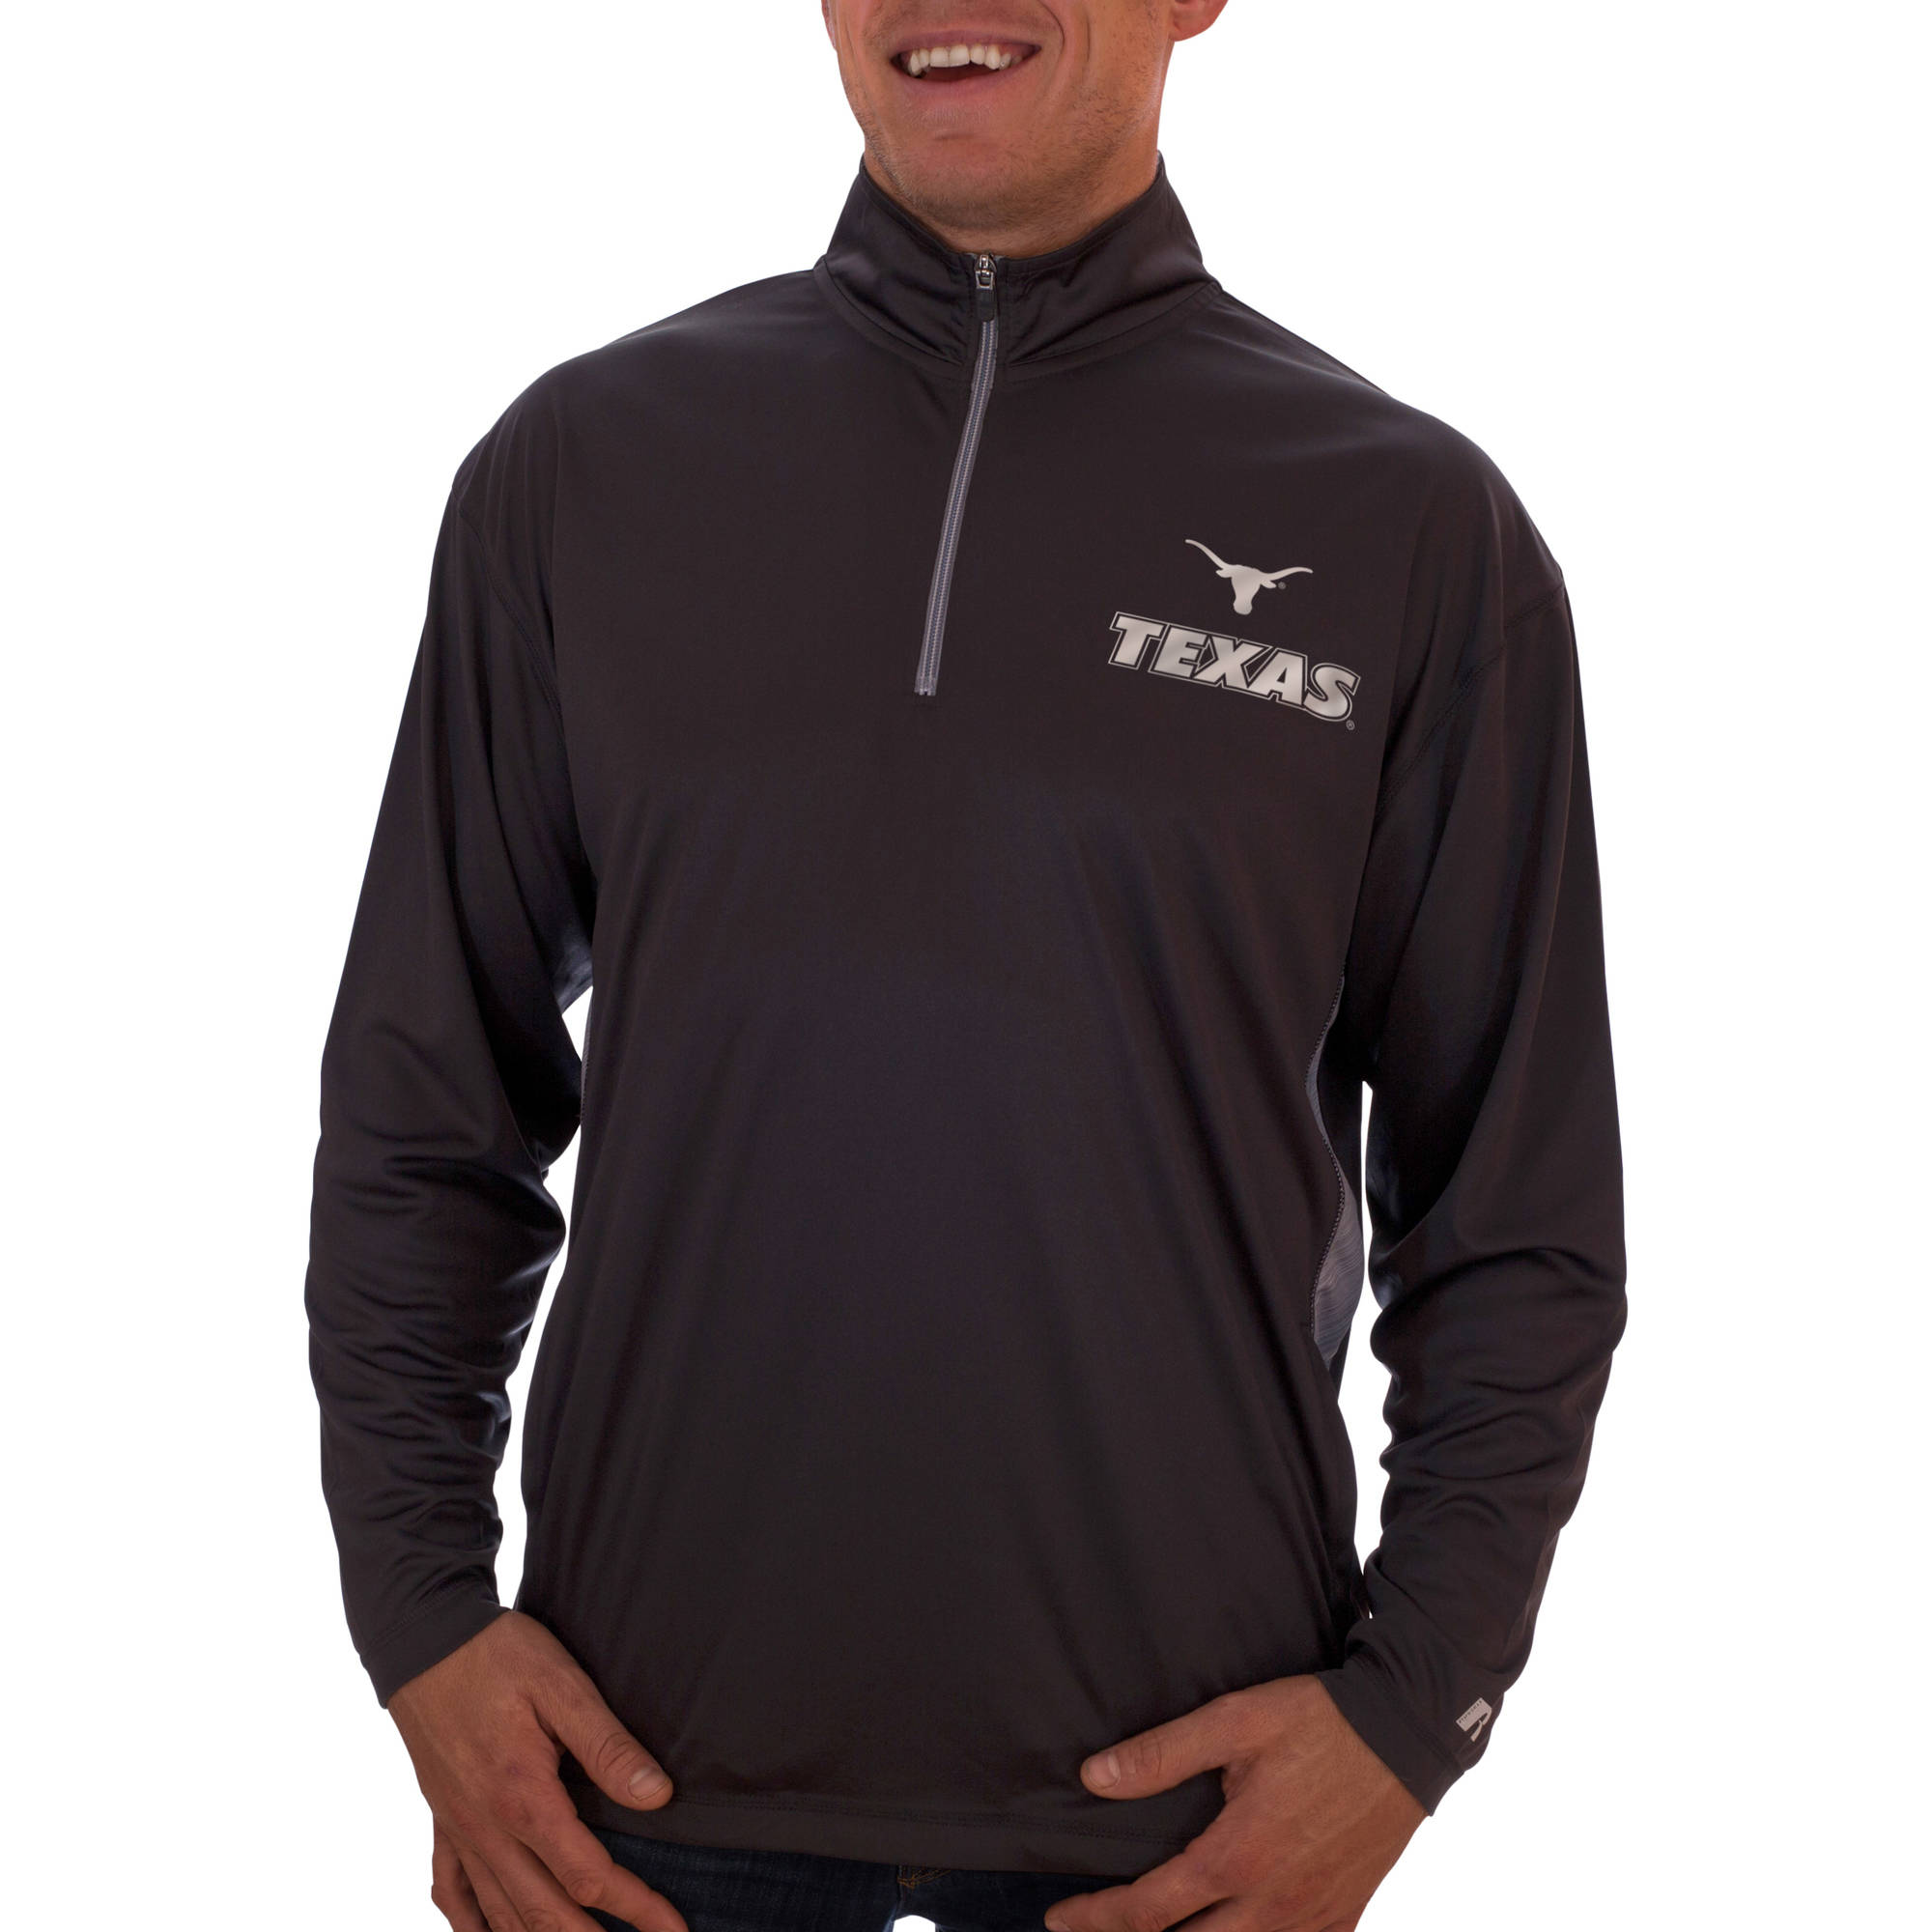 Russell NCAA Texas Longhorns Big Men's Athletic Fit Black/ Storm Gray 1/4-Zip Fitness Jacket